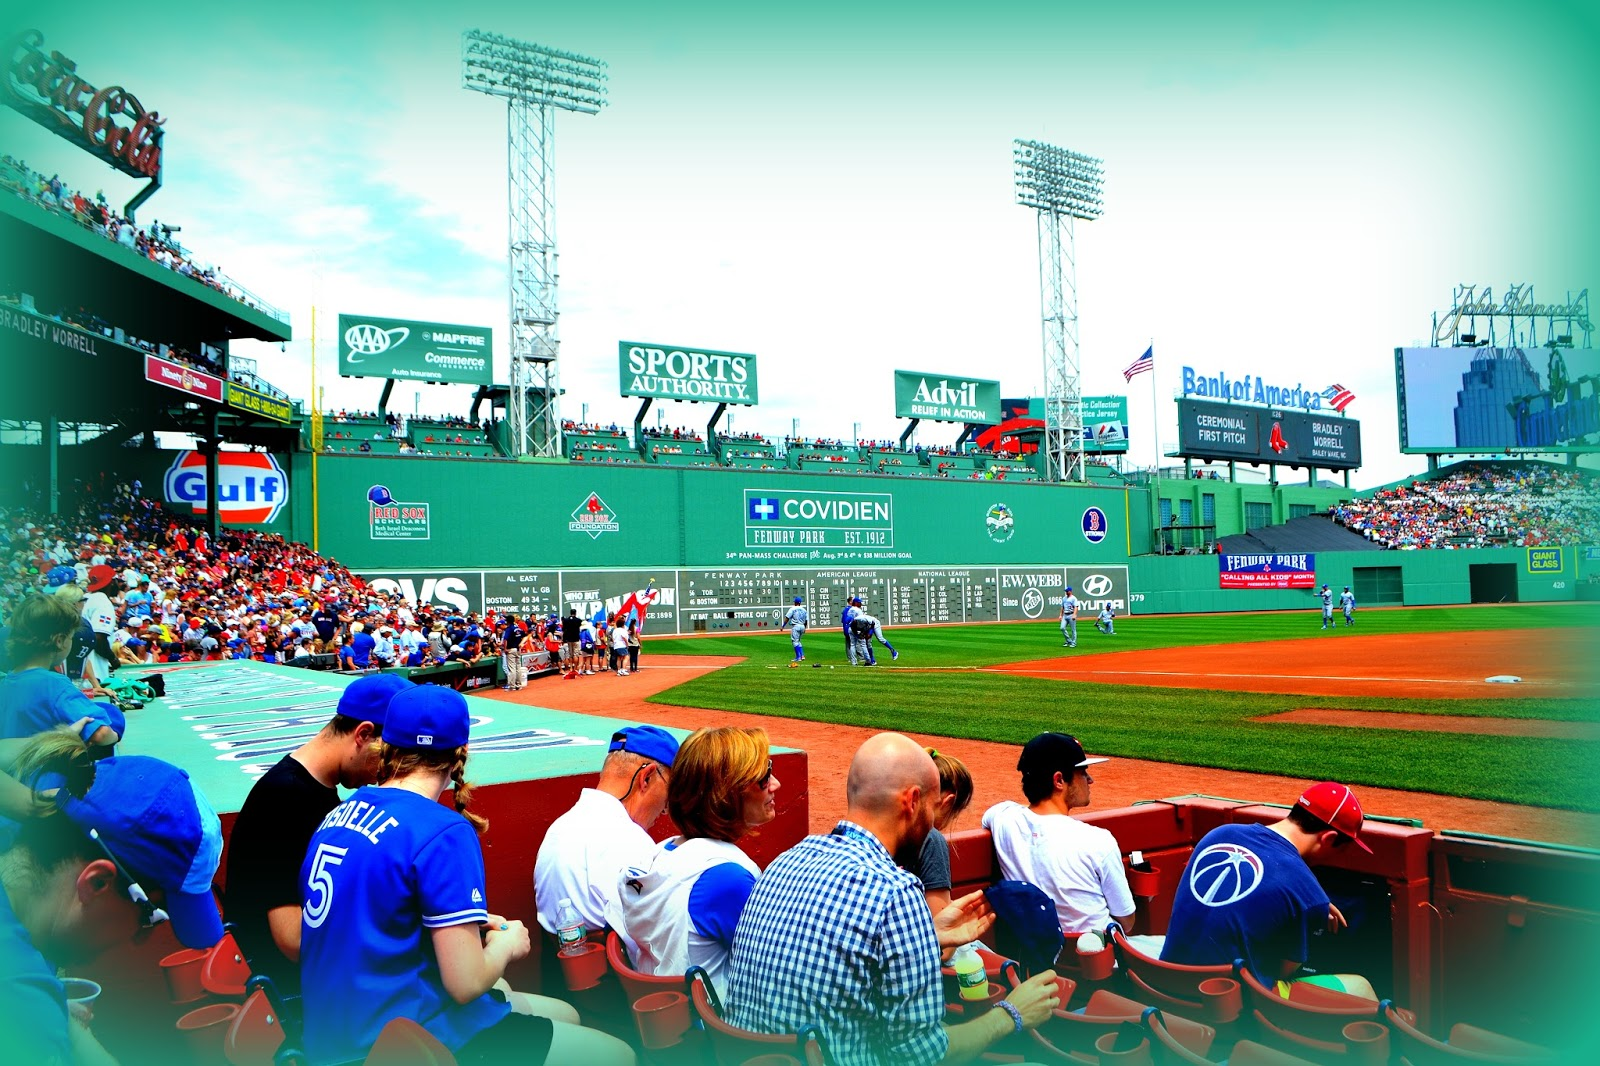 green monster, fenway park, boston, baseball, sport